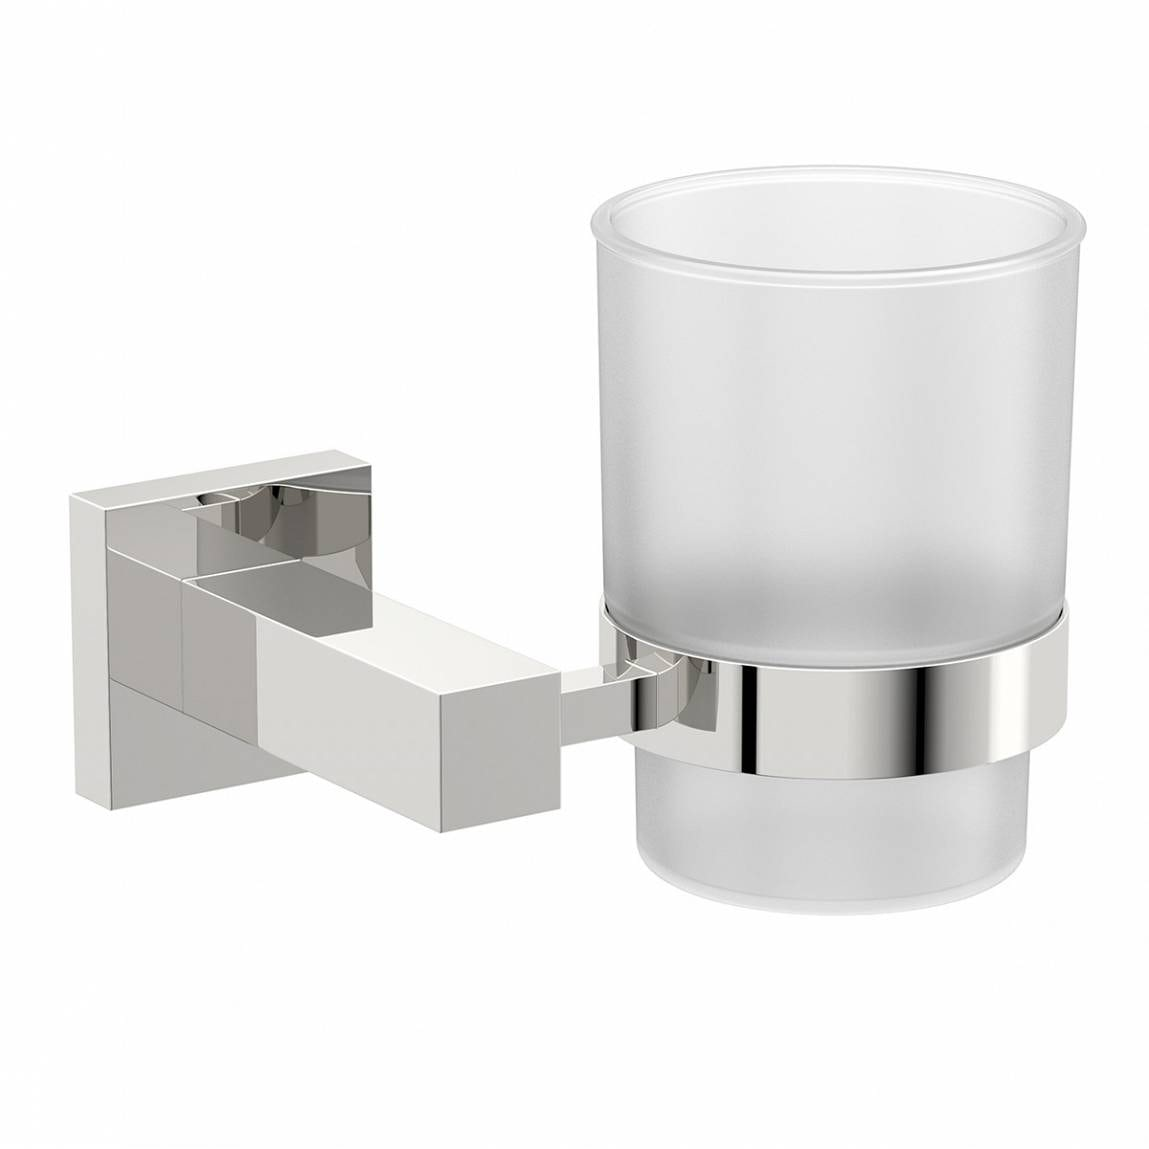 Cubik single tumbler and holder